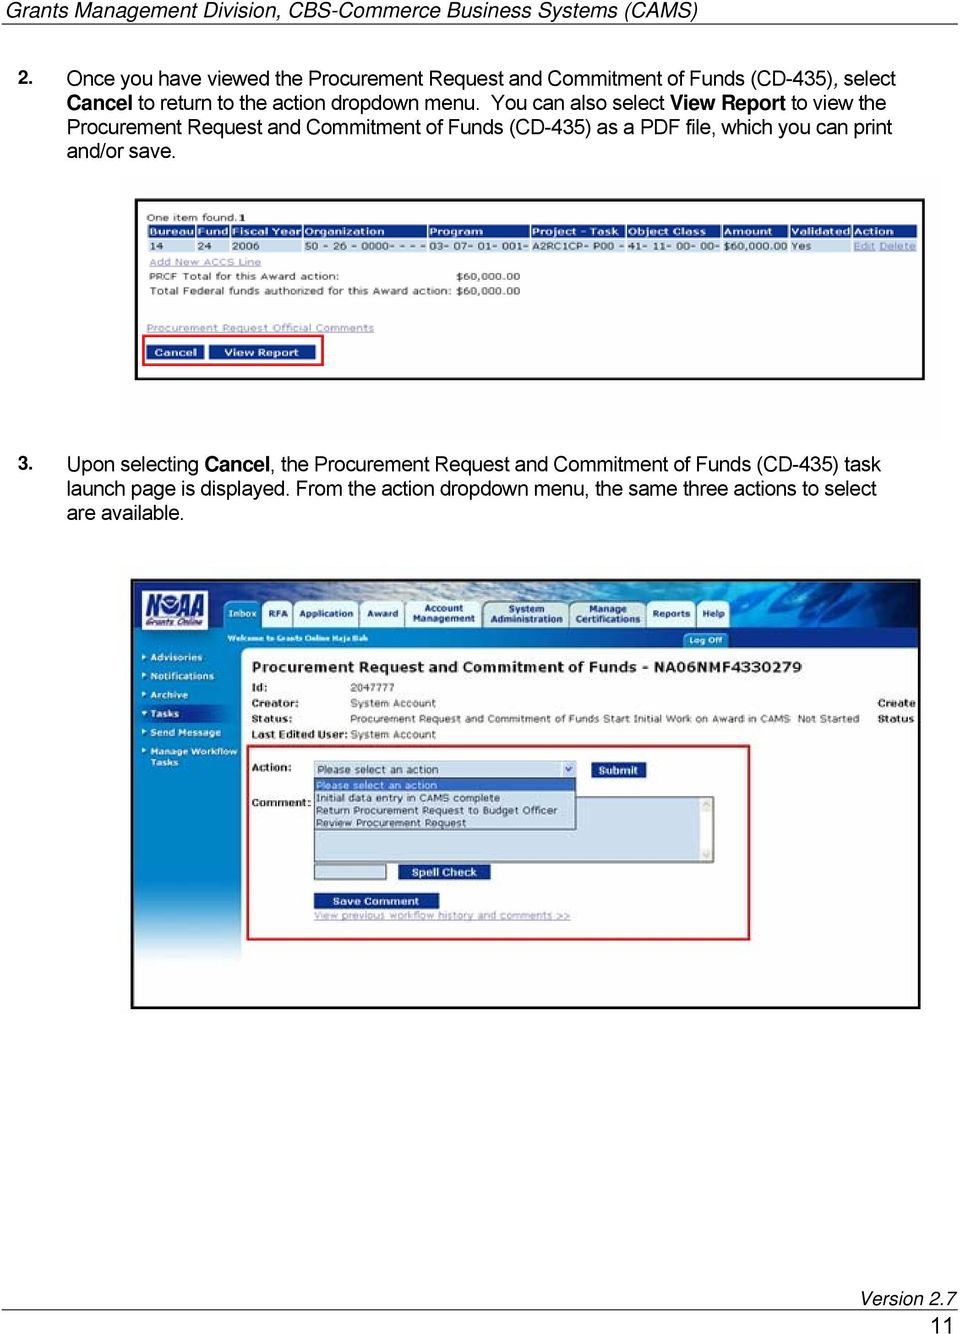 You can also select View Report to view the Procurement Request and Commitment of Funds (CD-435) as a PDF file, which